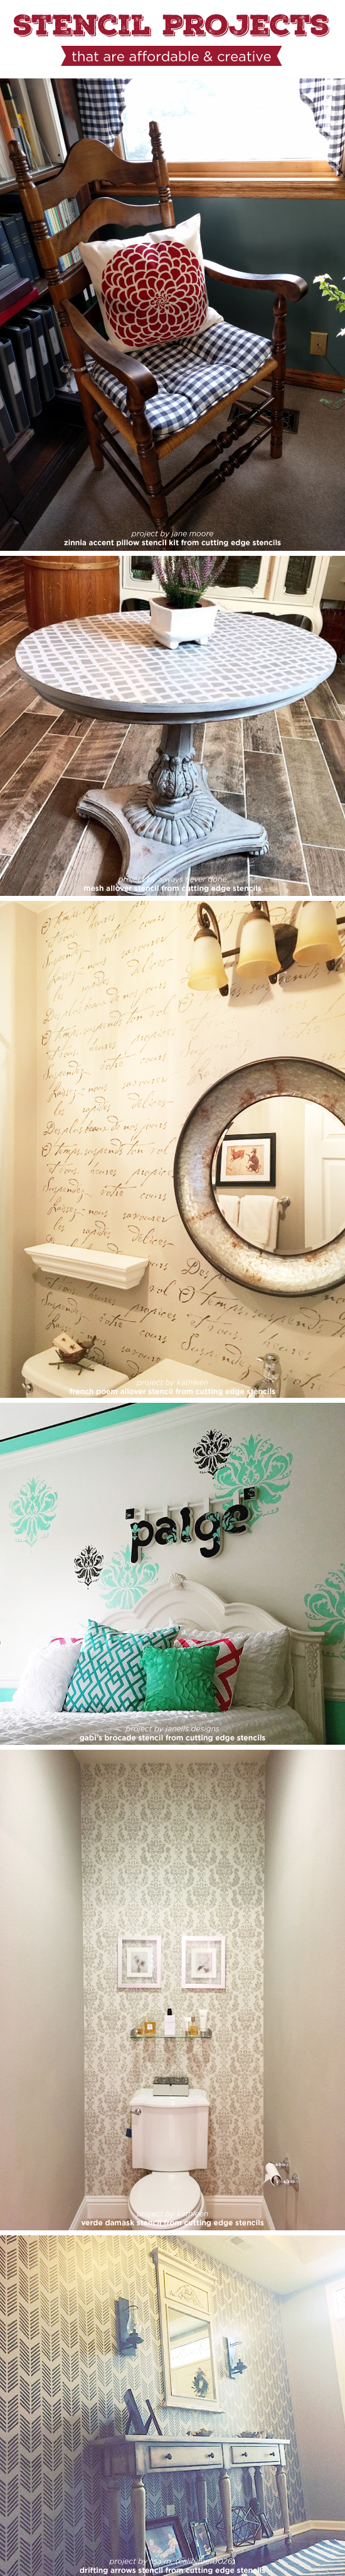 Cutting Edge Stencils shares DIY home decorating ideas using wall and craft stencil patterns. http://www.cuttingedgestencils.com/wall-stencils-stencil-designs.html